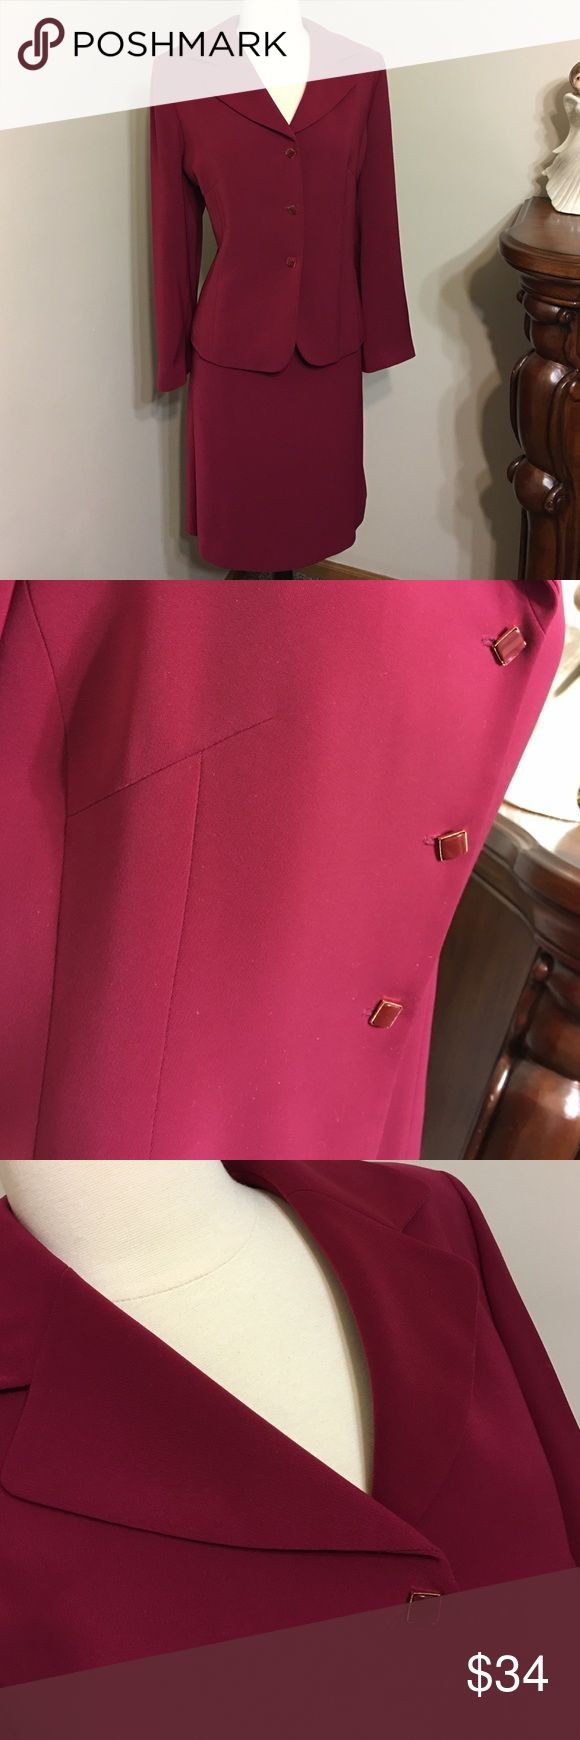 KASPER PETITE Size 16P Two piece Suit Cherry Red Beautiful,Good condition,Fits perfect to size Kasper Jackets & Coats